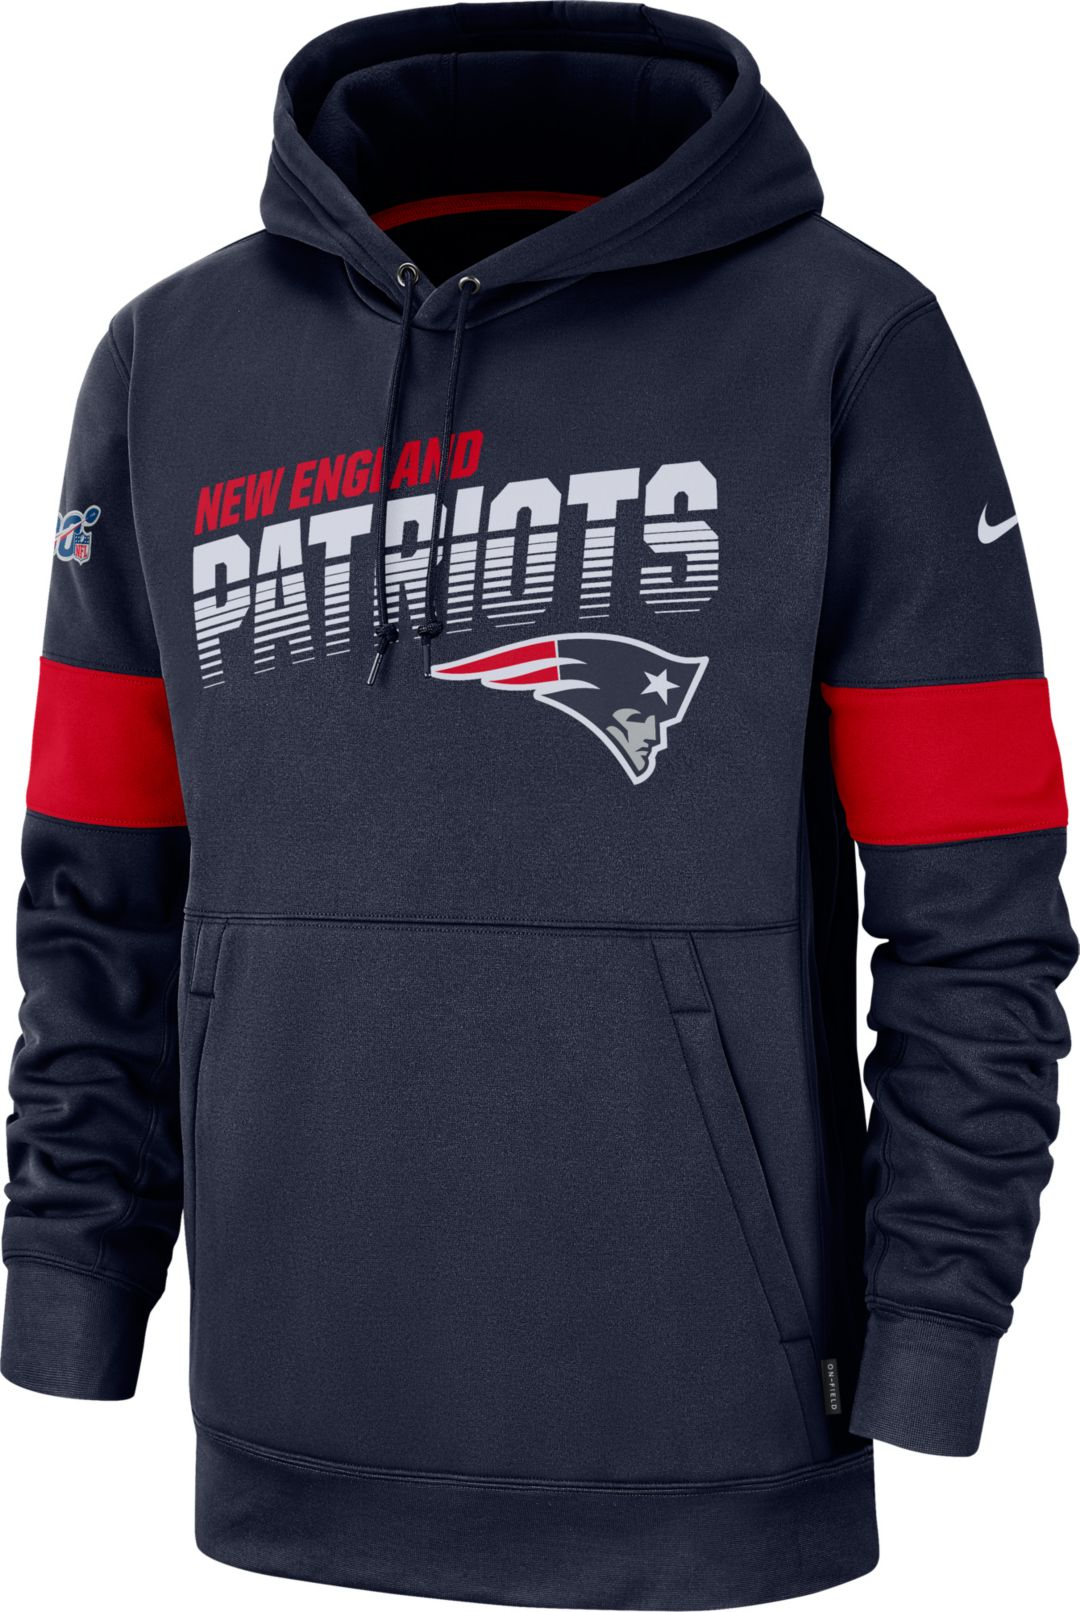 best loved 1f587 e5e7a Nike Men's New England Patriots 100th Sideline Therma-FIT Navy Pullover  Hoodie